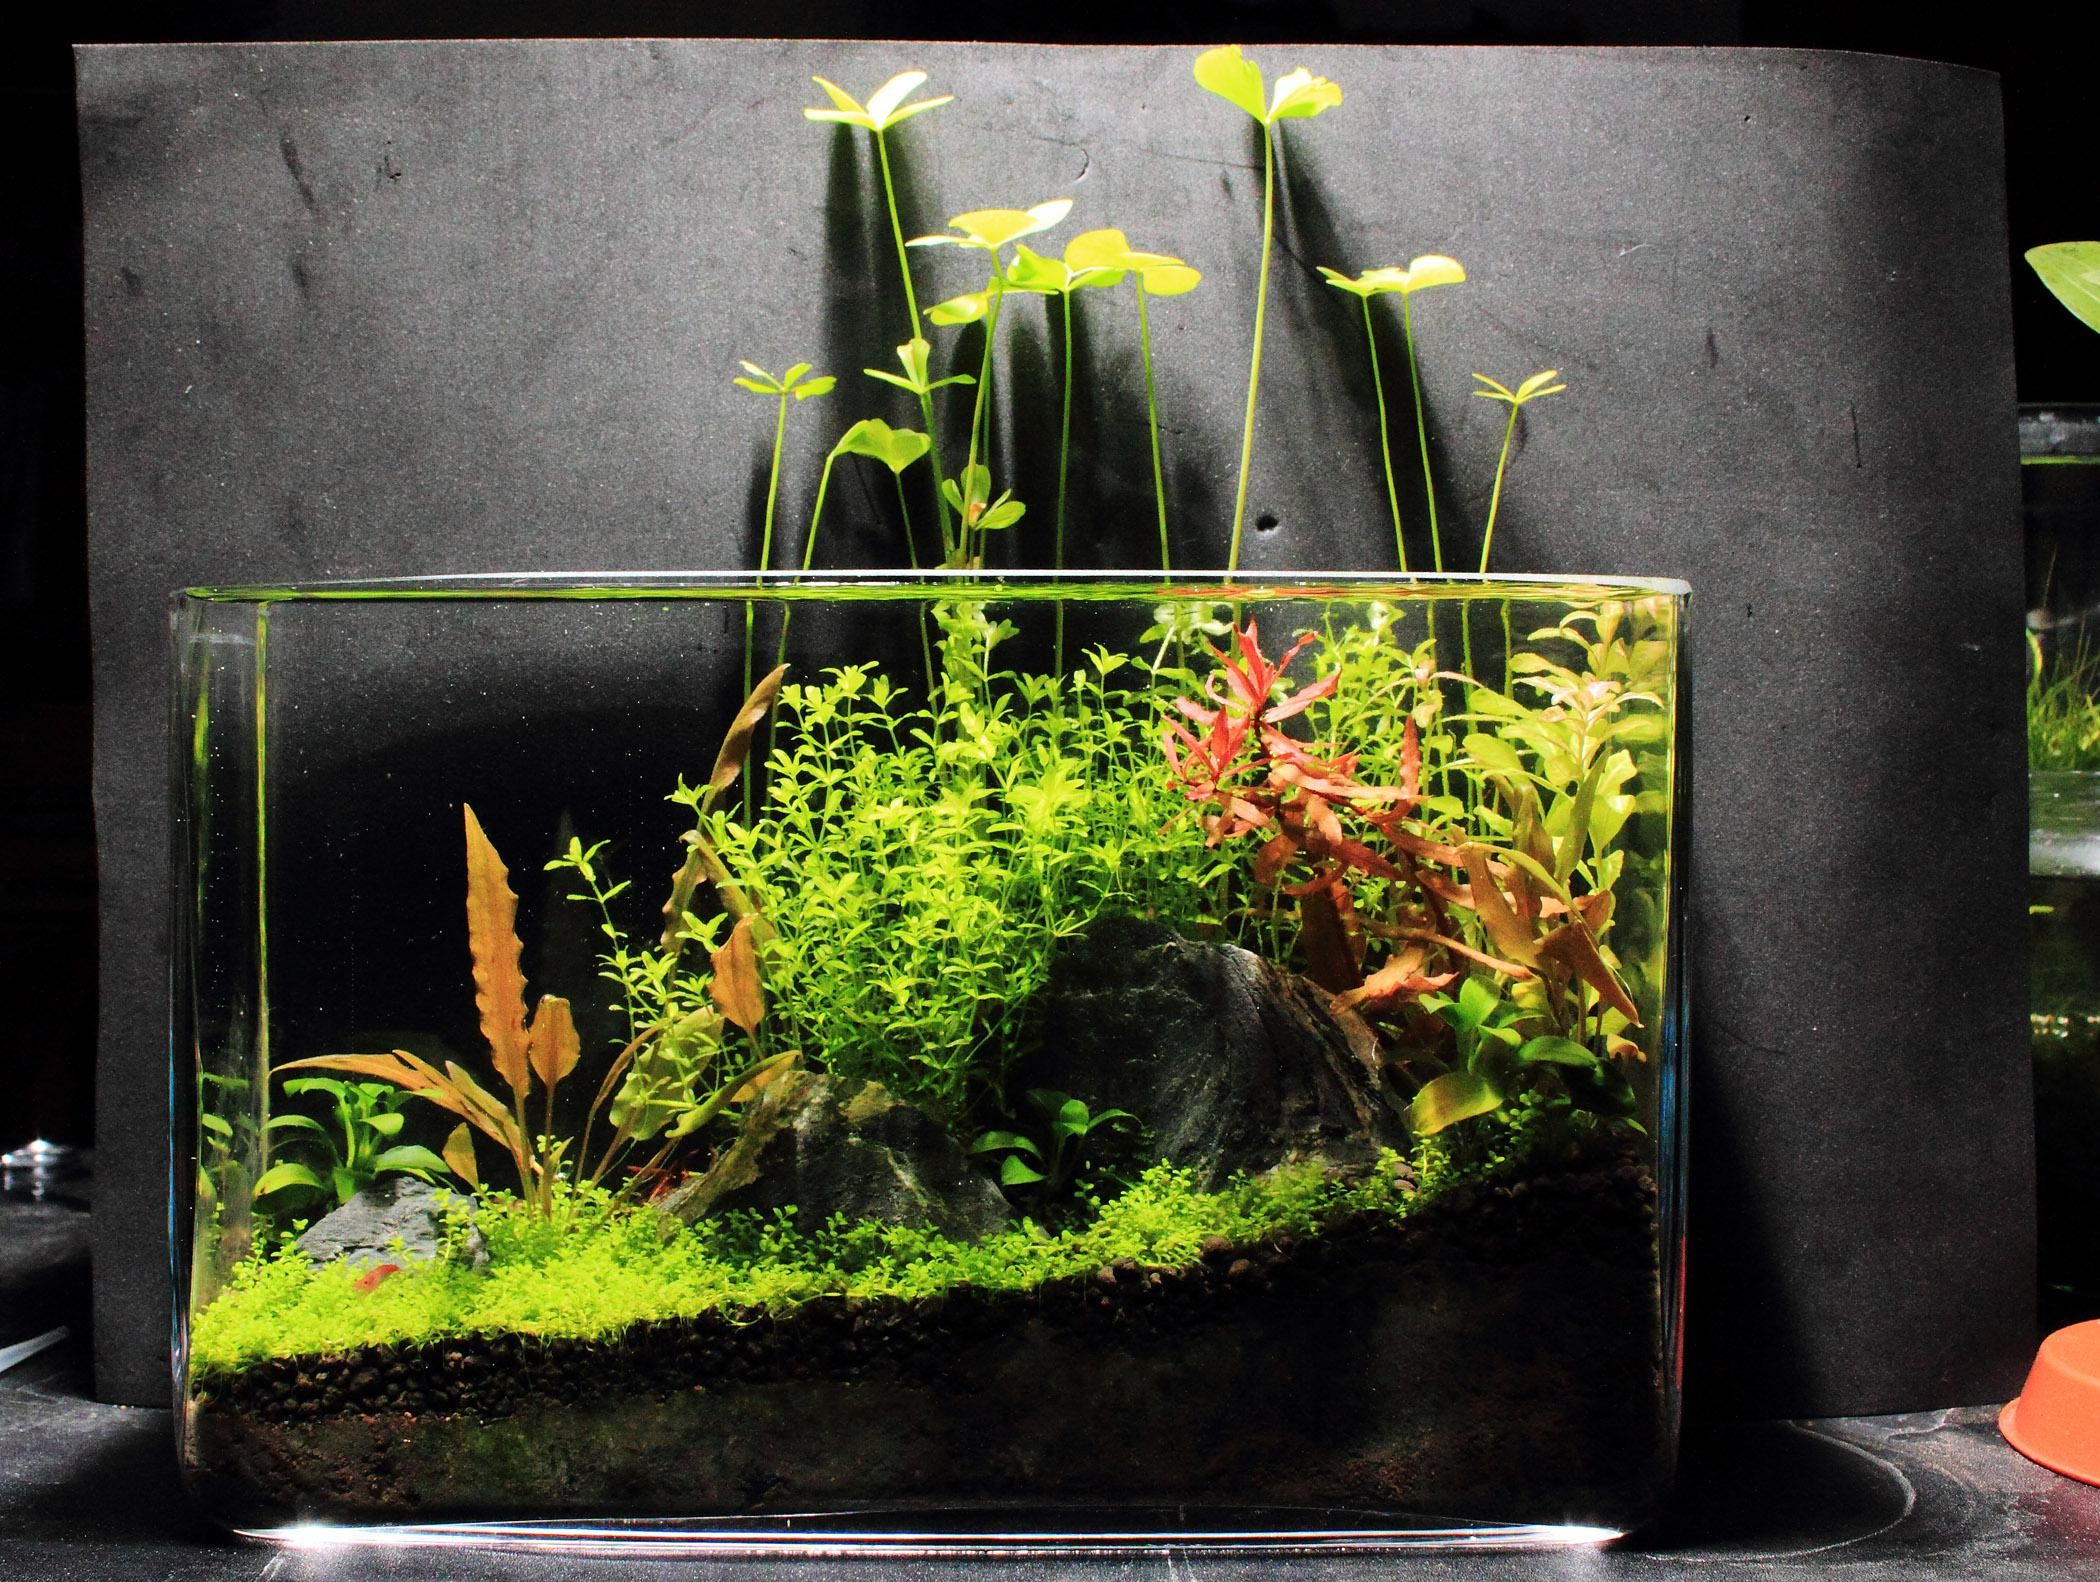 Xz 39 s 3ft high tech low tech nano experiments the for Planted tank fish